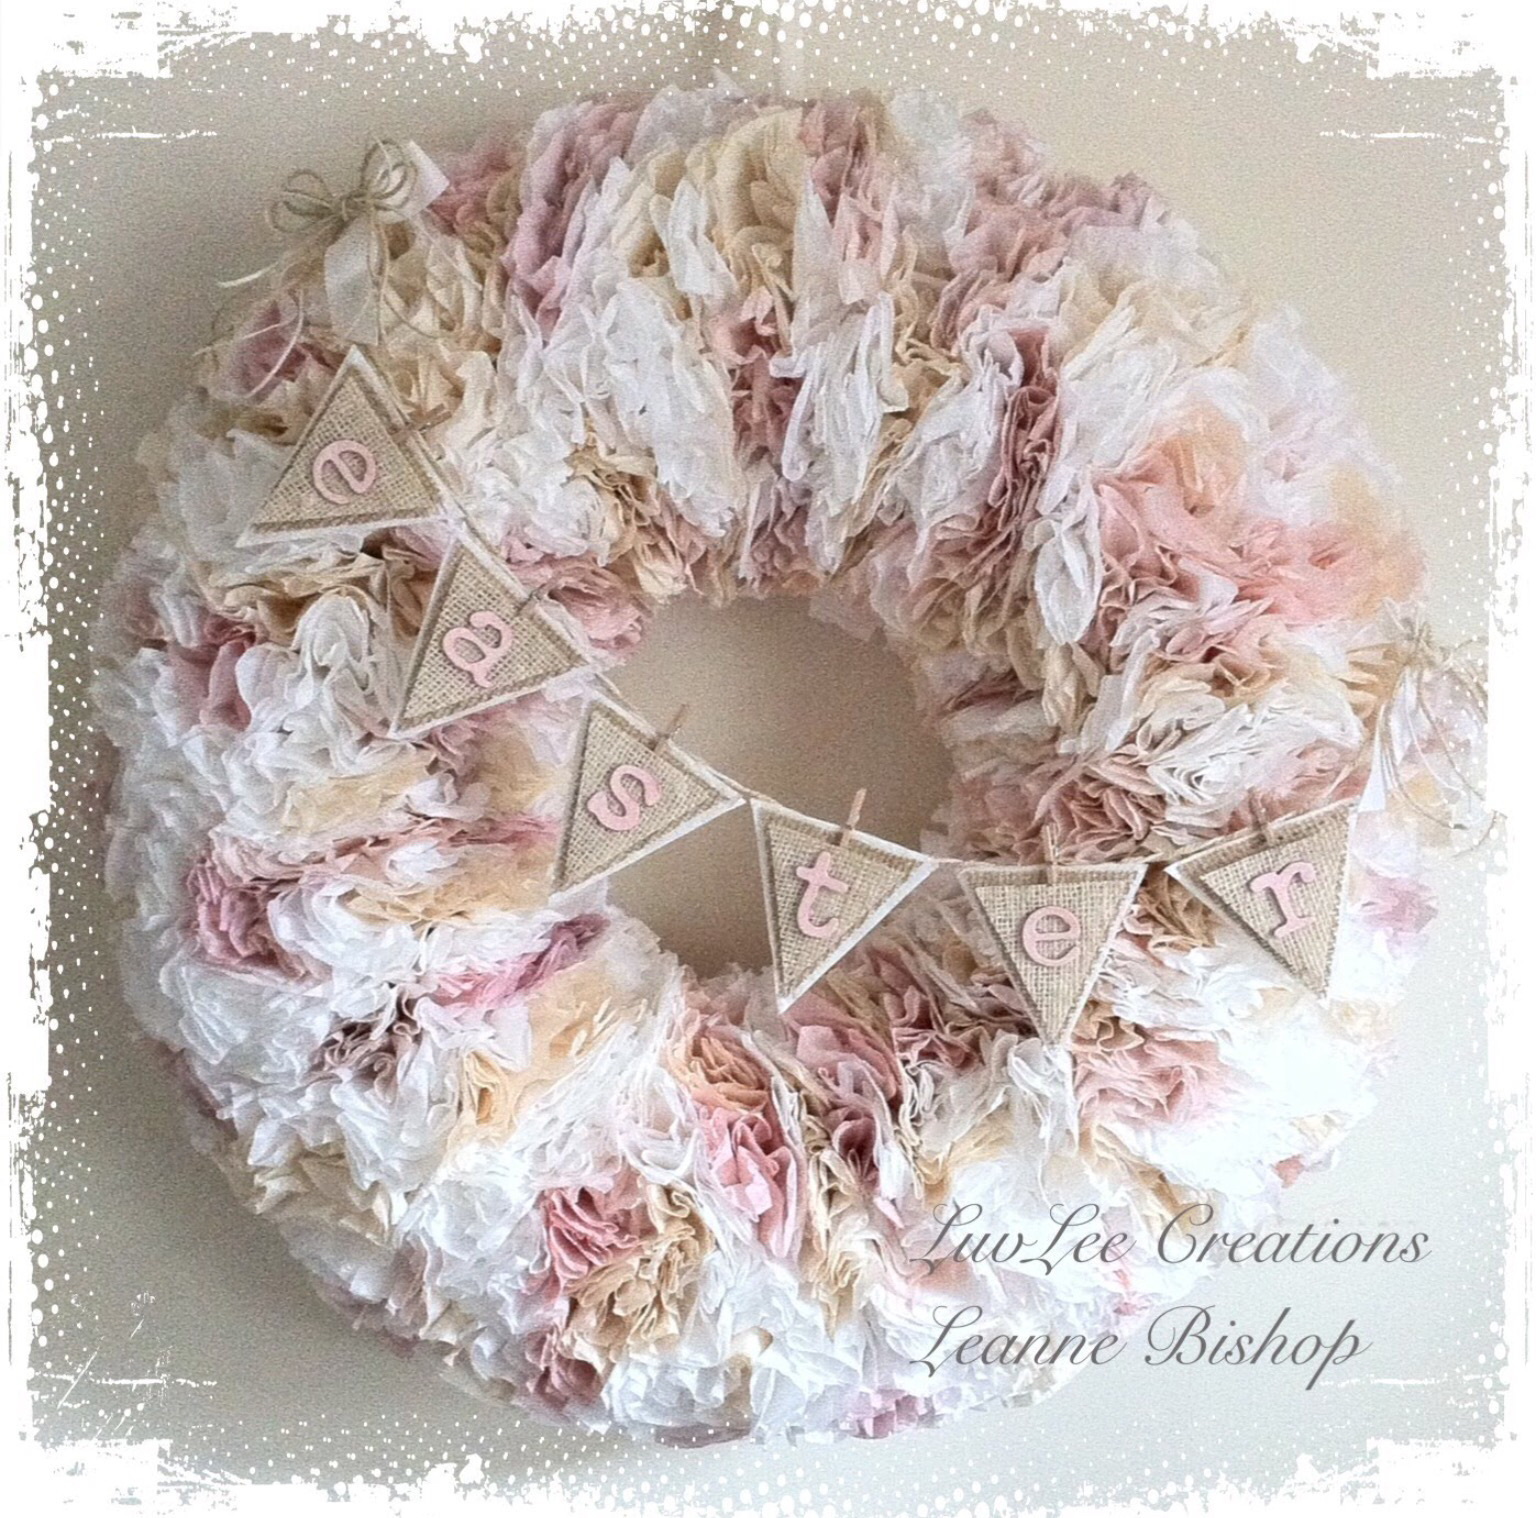 ... Imaginings & Silly Things: Pretty Valentine's Coffee Filter Wreath